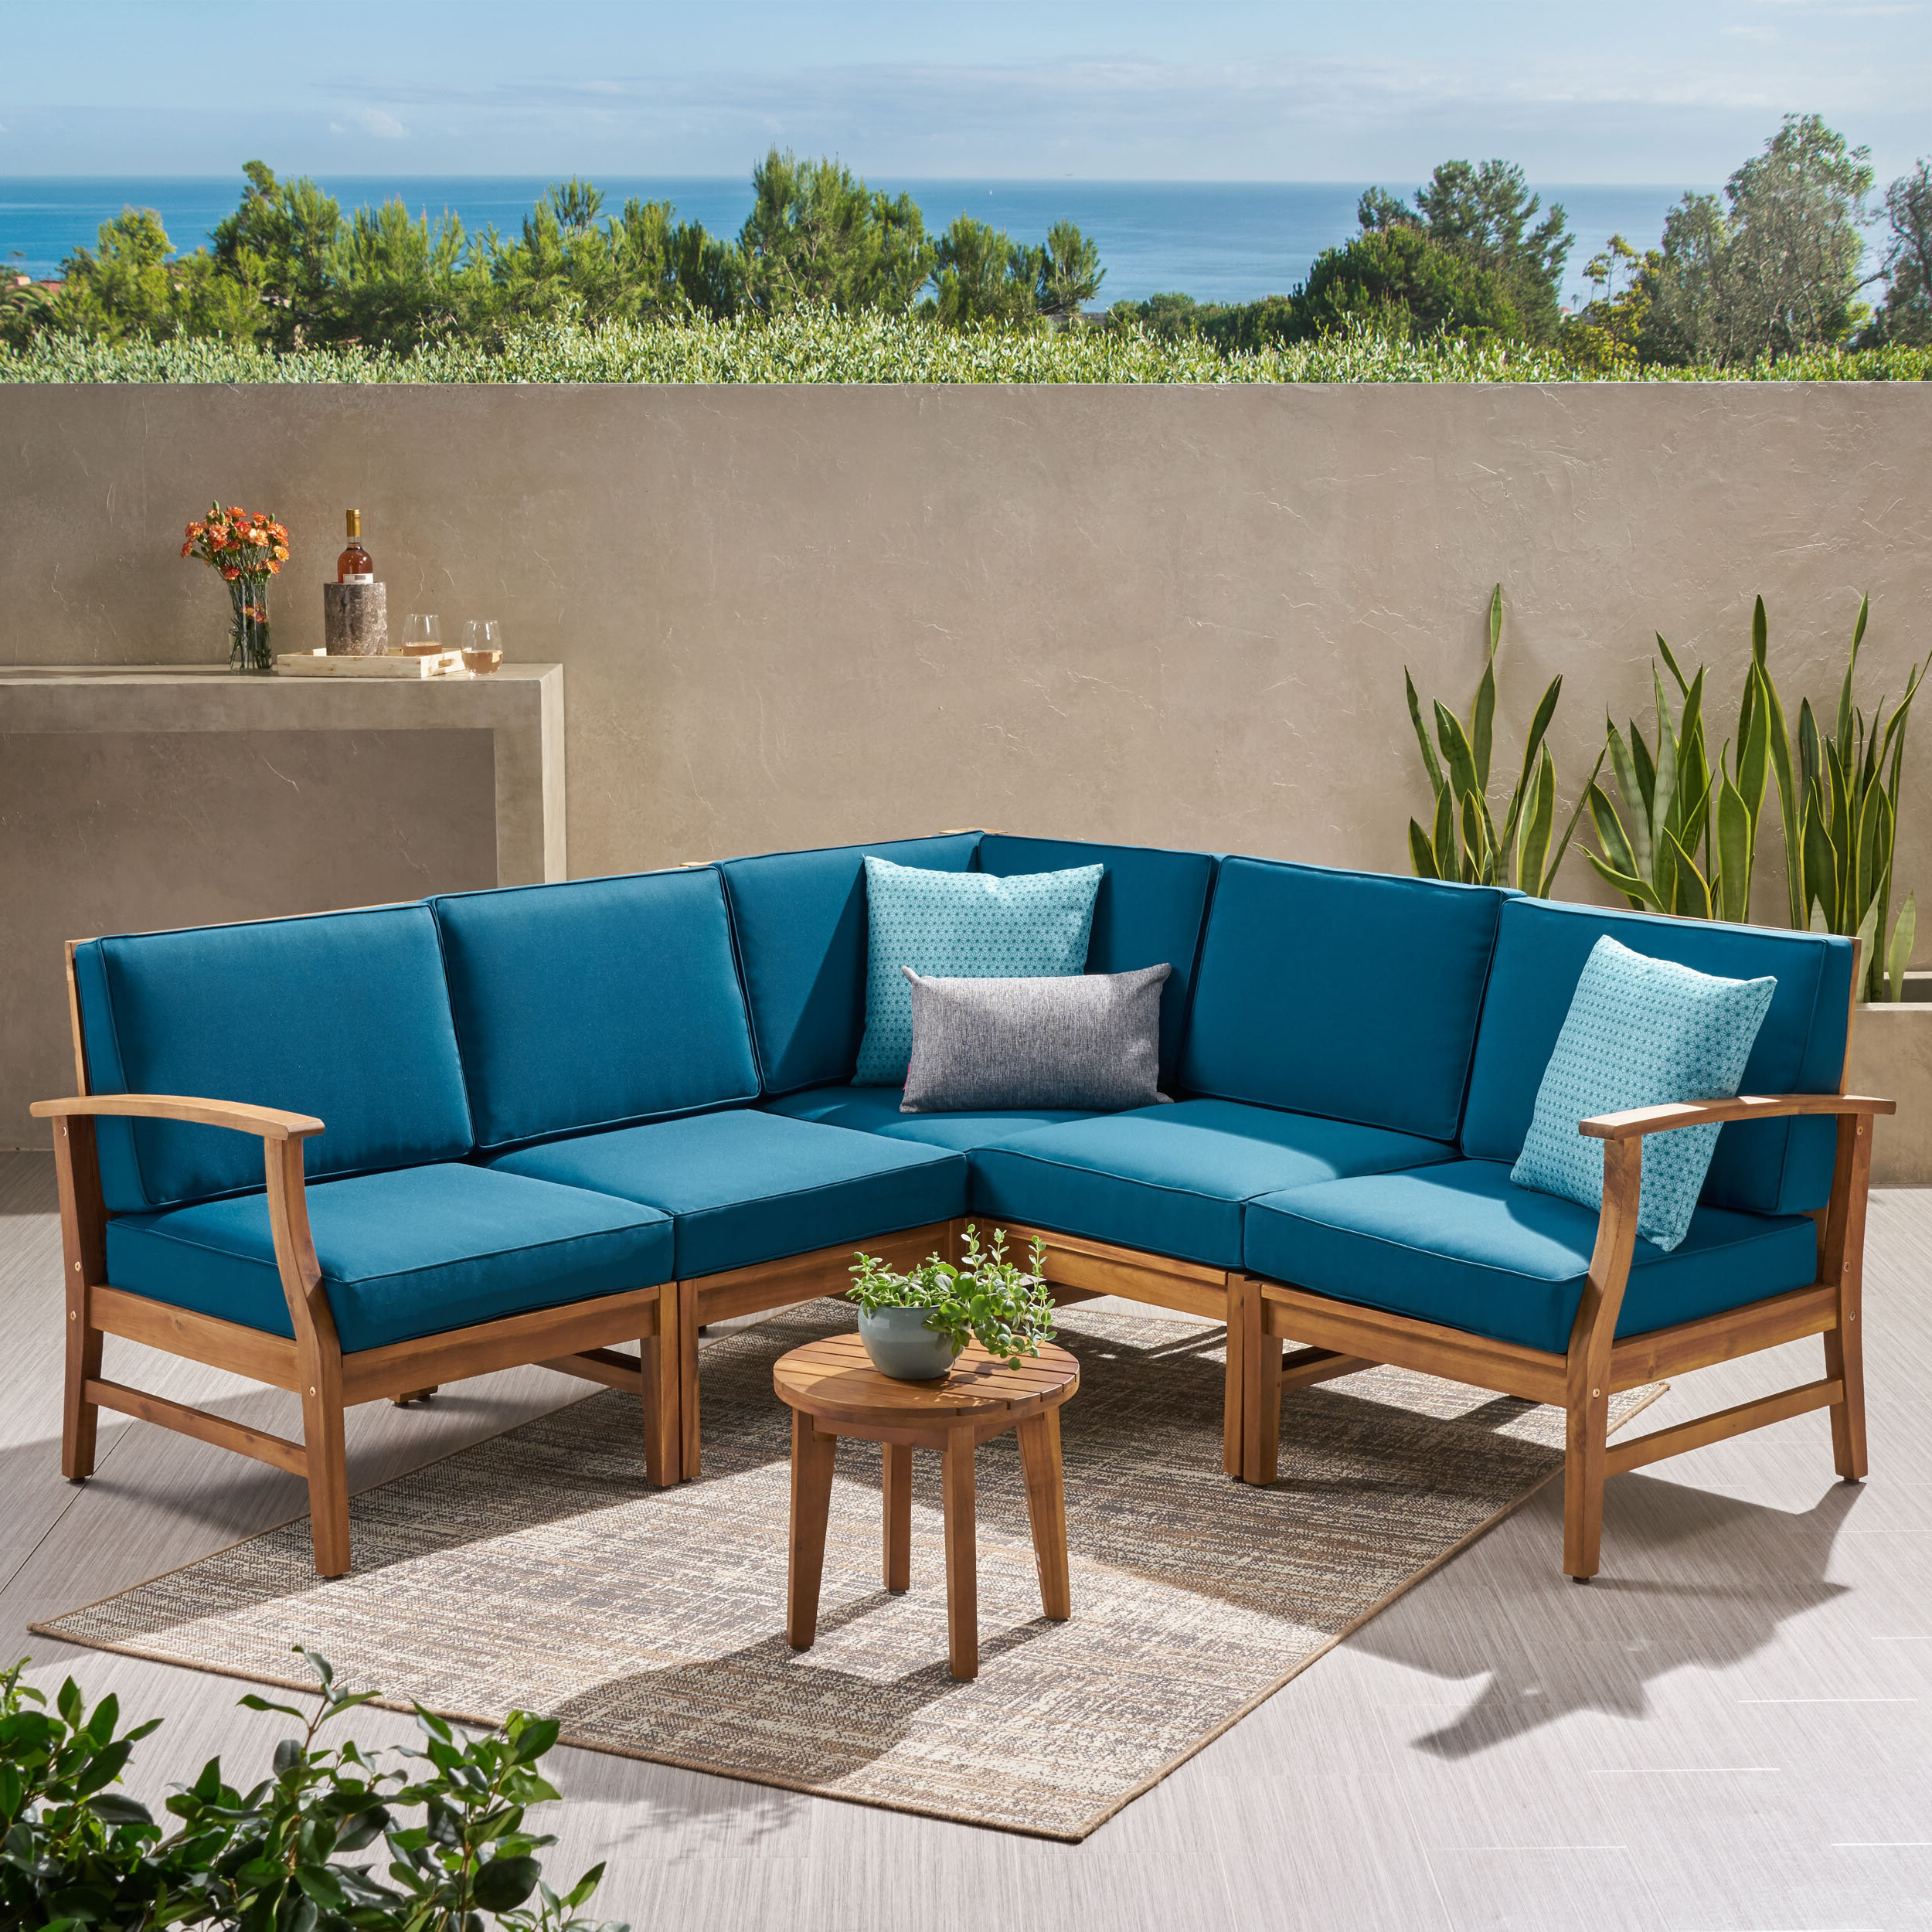 Antonia Teak Patio Sectional With Cushions Intended For Well Known Burruss Patio Sectionals With Cushions (Gallery 11 of 25)